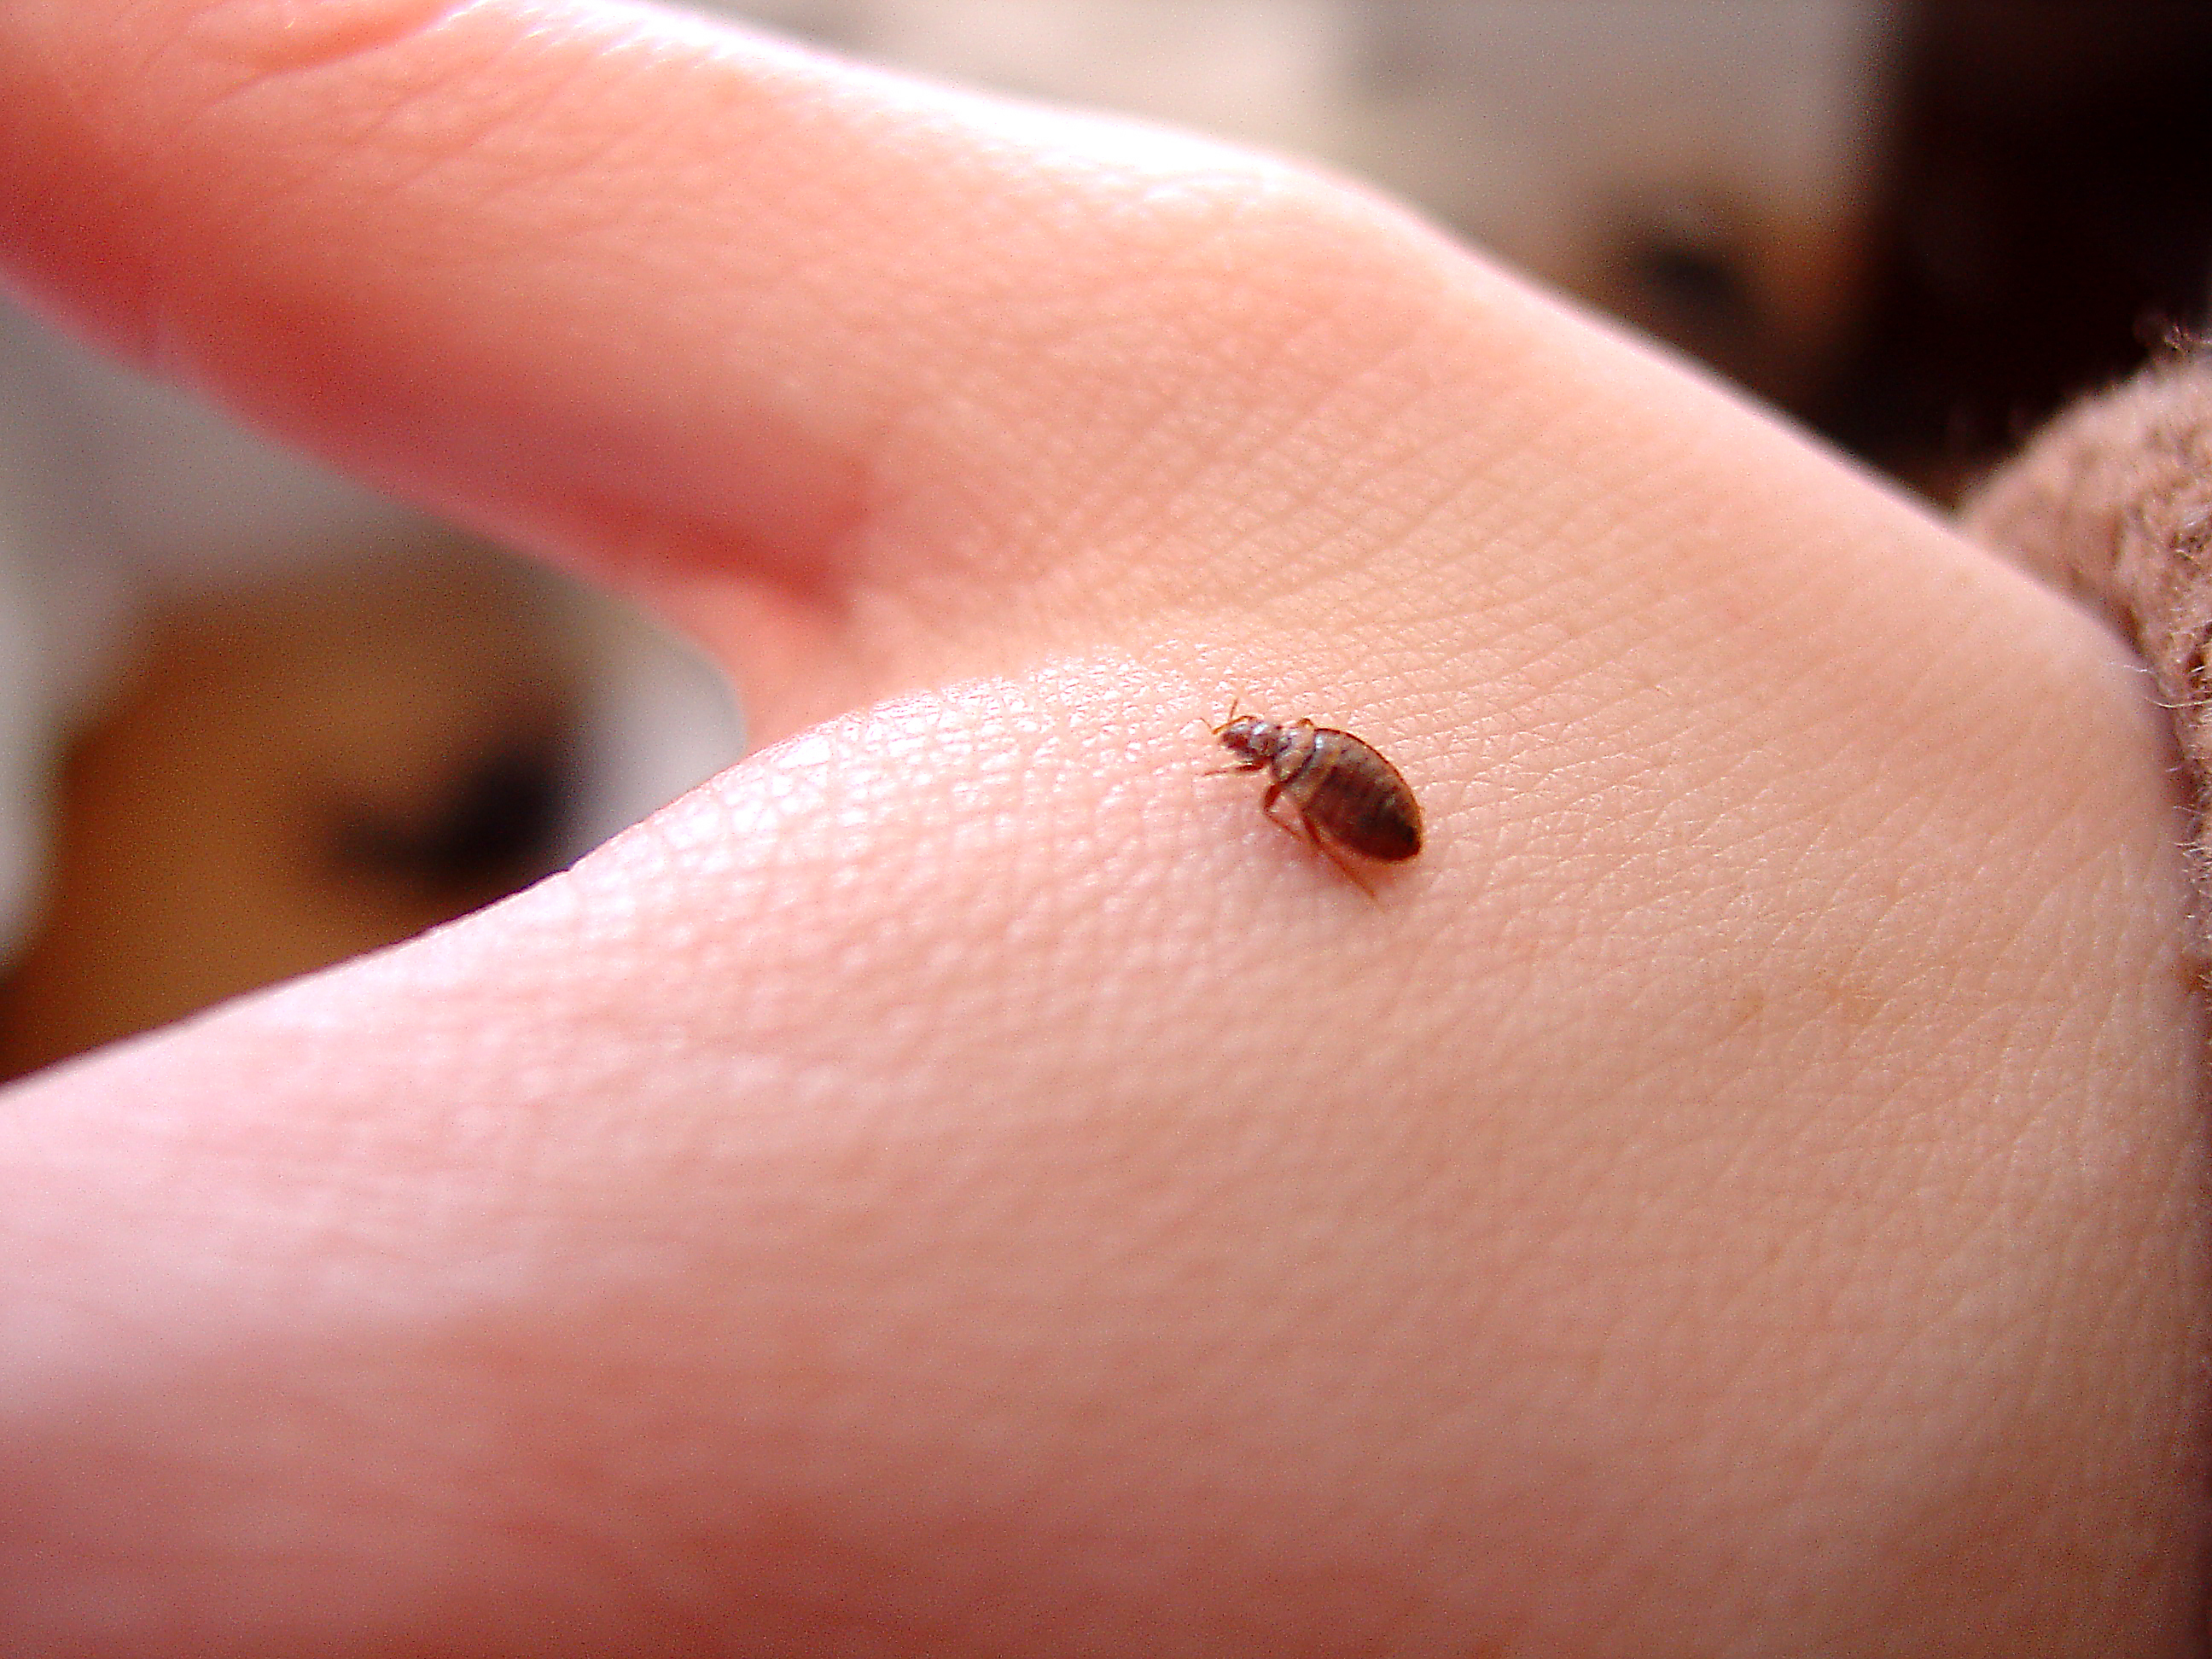 signs of bed bug bites #10